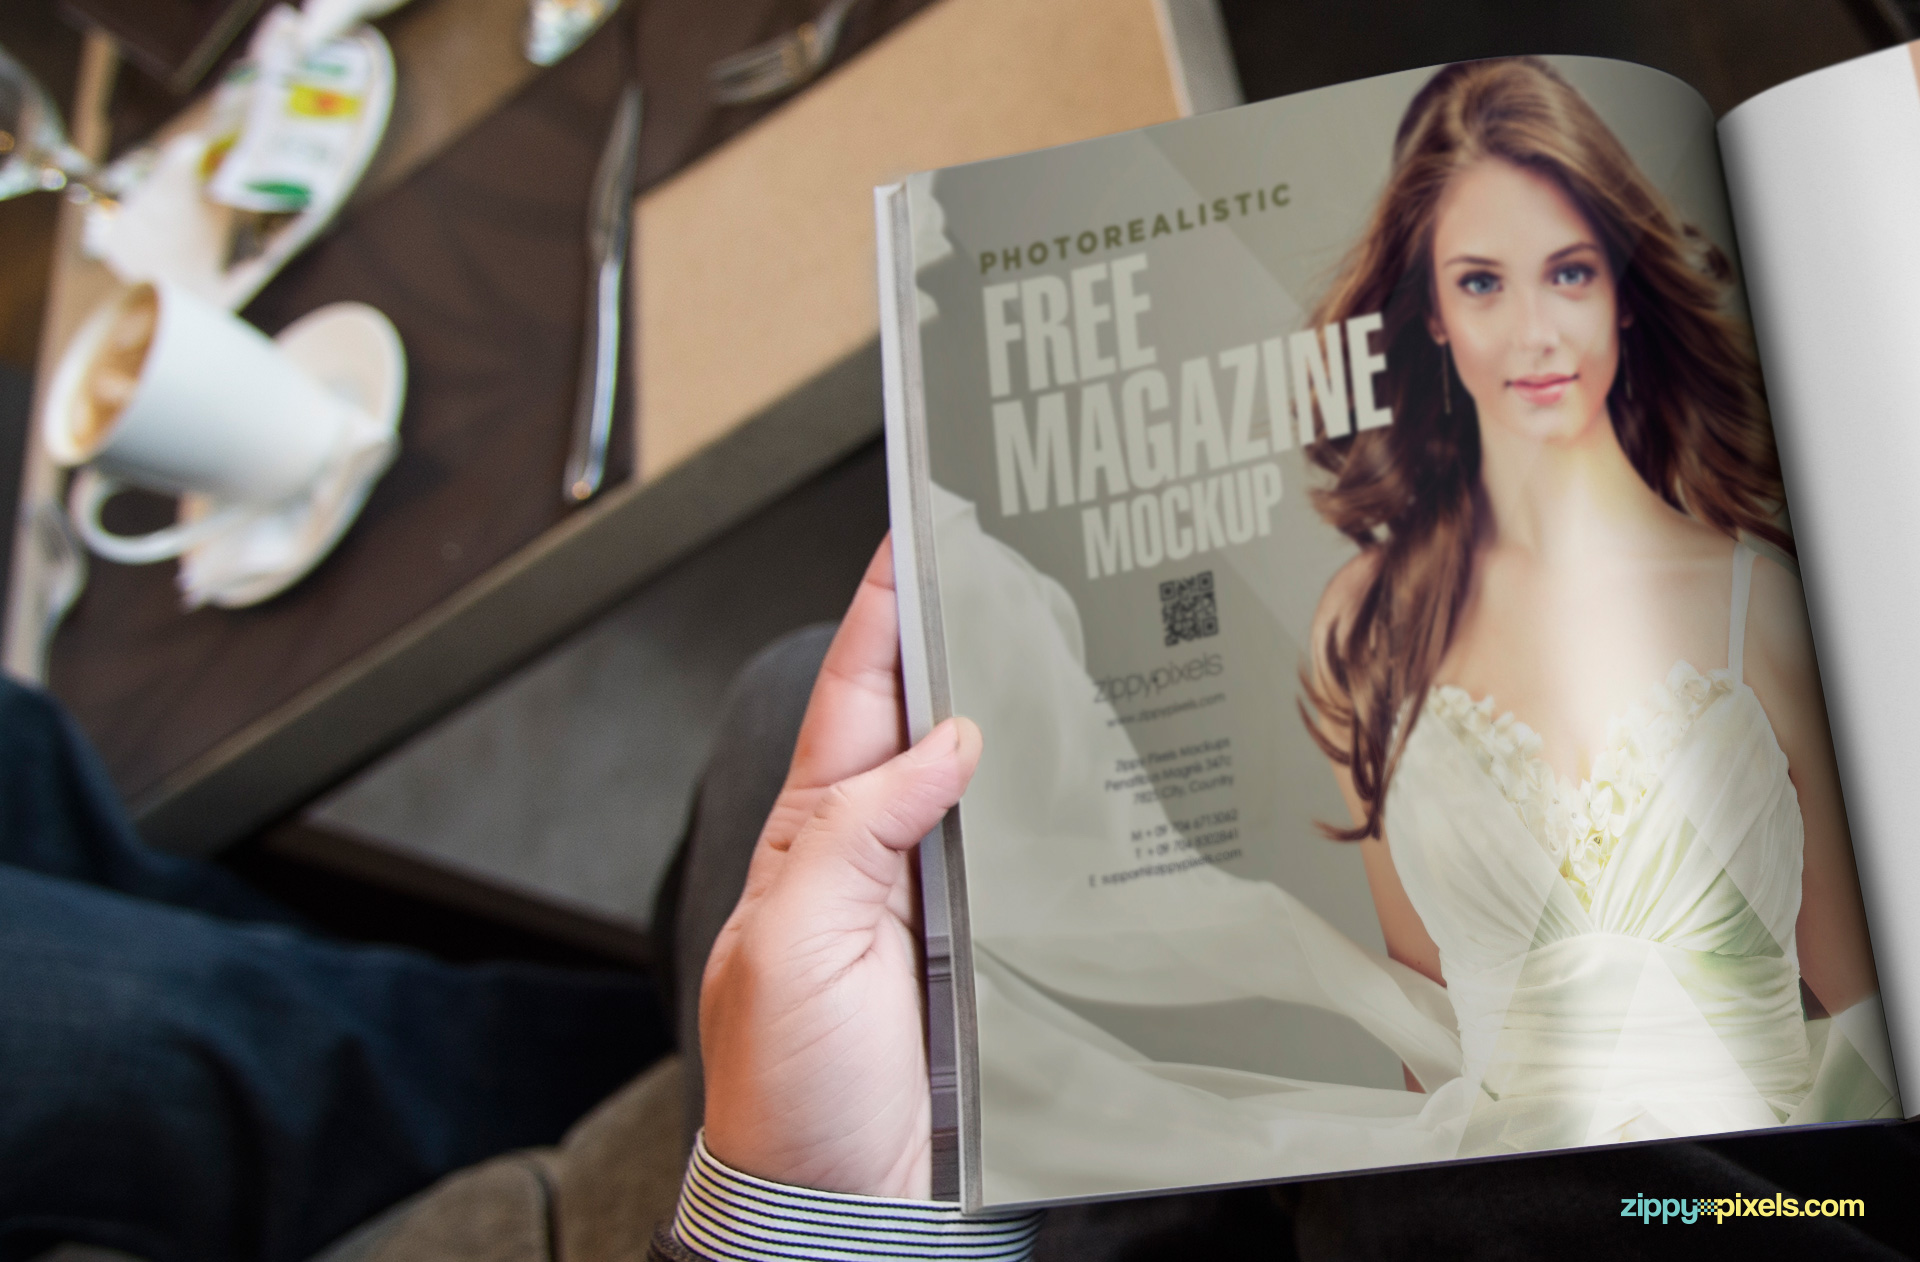 Show you magazine more realistically in the hands of a man.